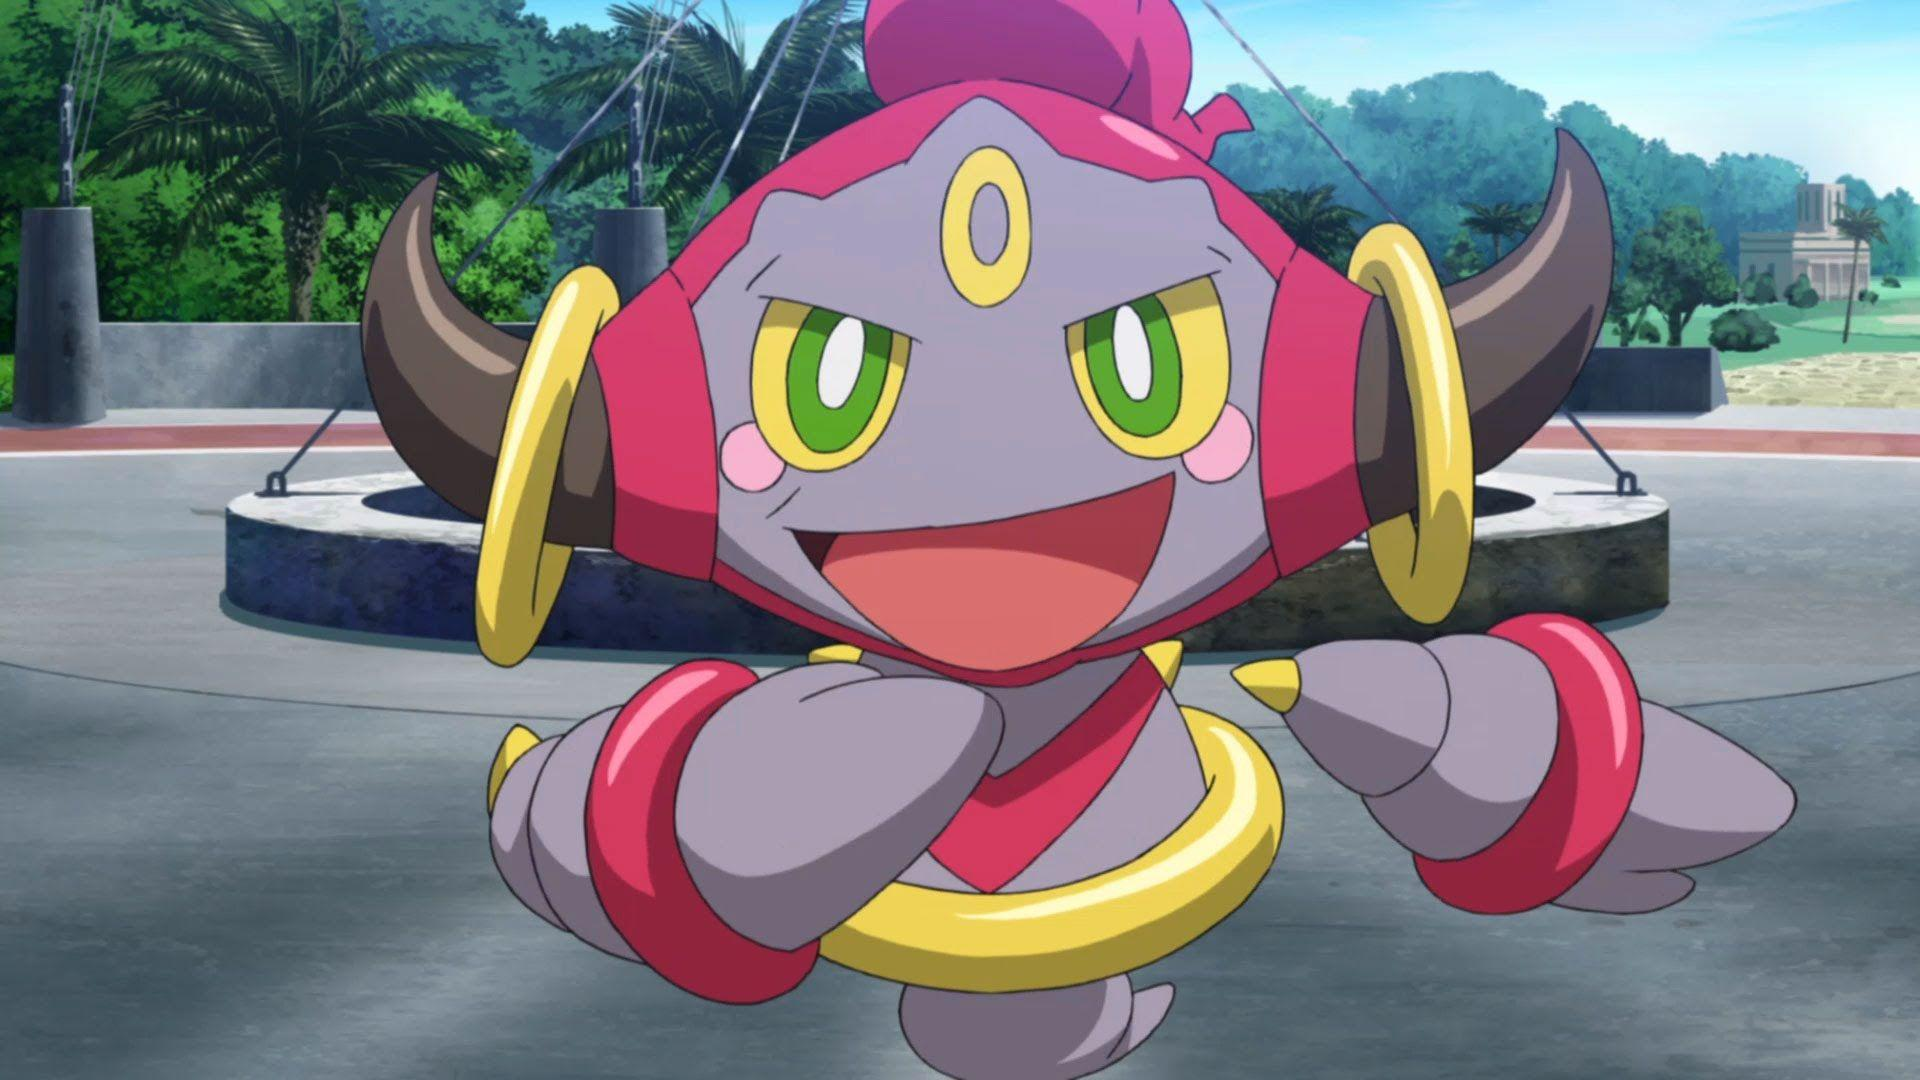 Pokémon the Movie: Hoopa and the Clash of Ages Trailer - YouTube